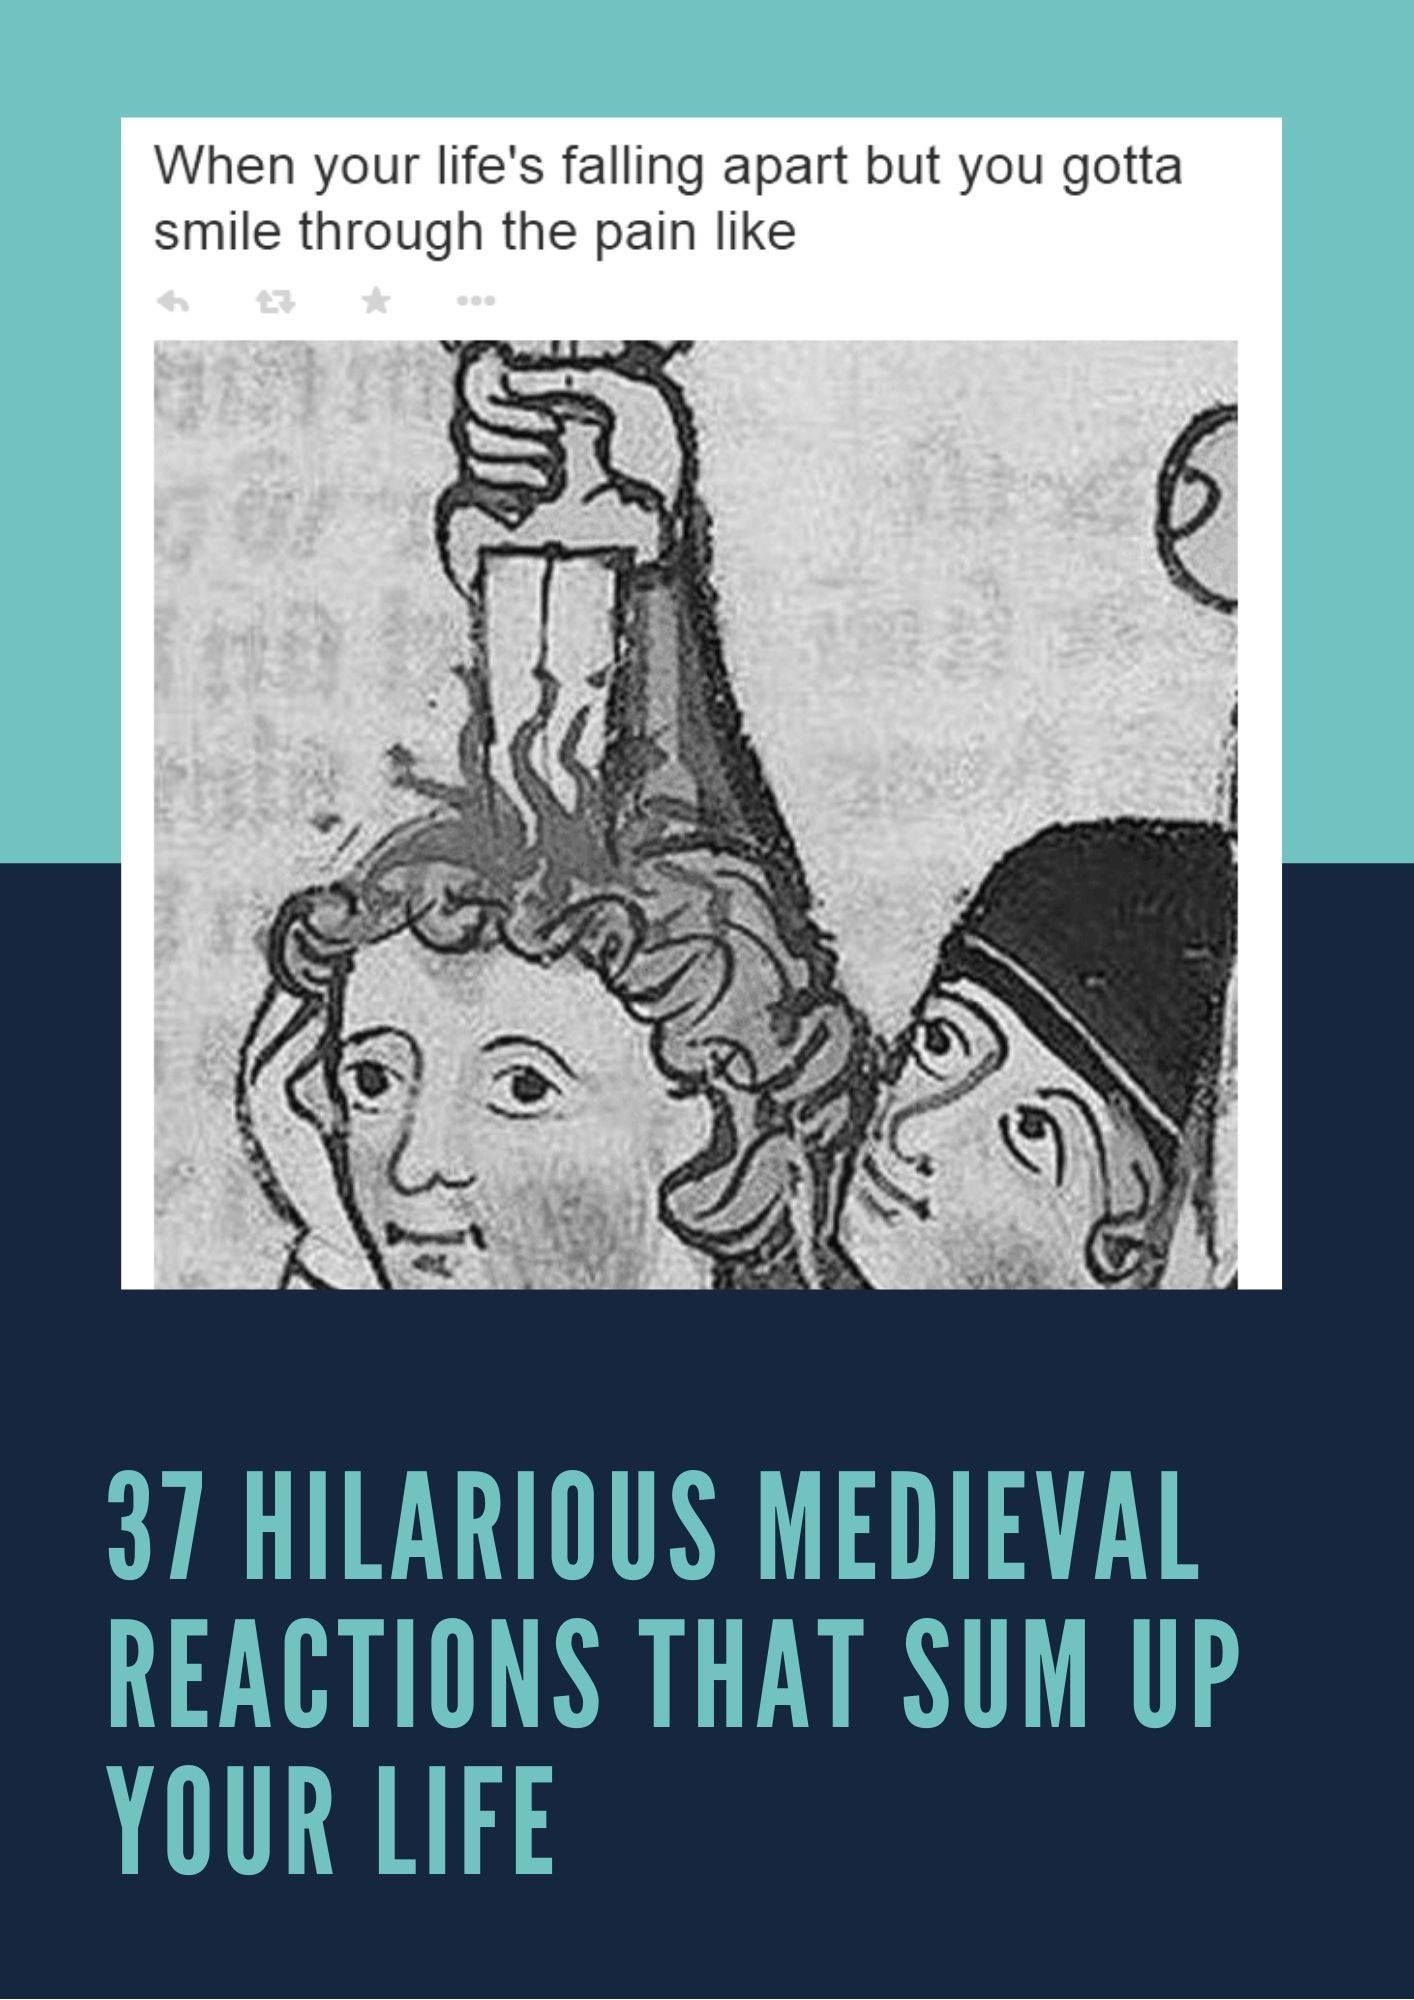 37 Hilarious Medieval Reactions That Sum Up Your Life in